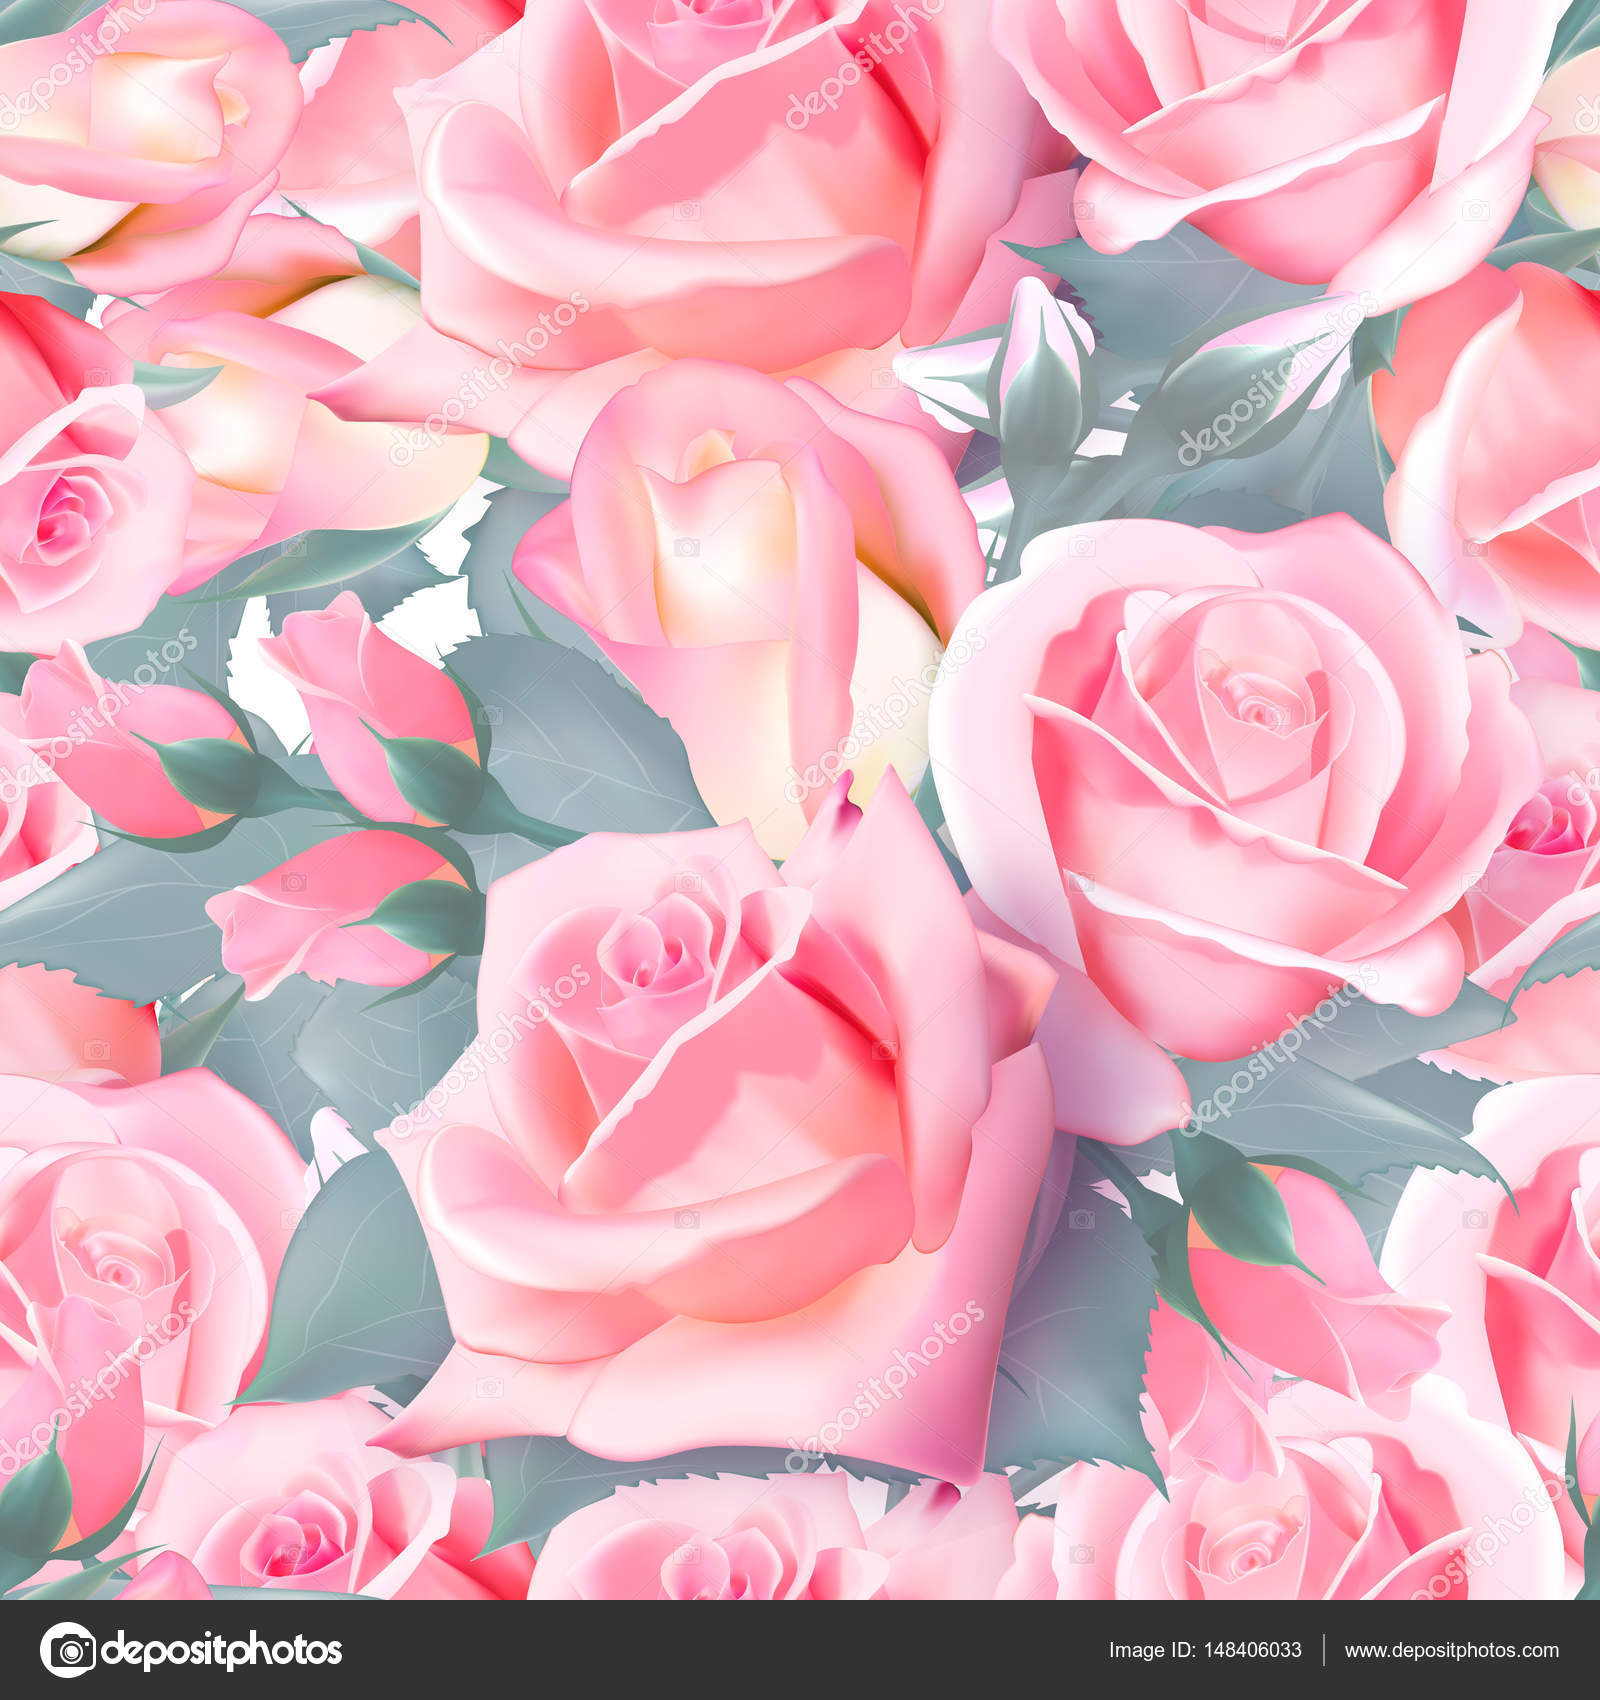 Roses Wallpaper Seamless Pattern Pink Rose Dense Vector Illustration By Leezarius